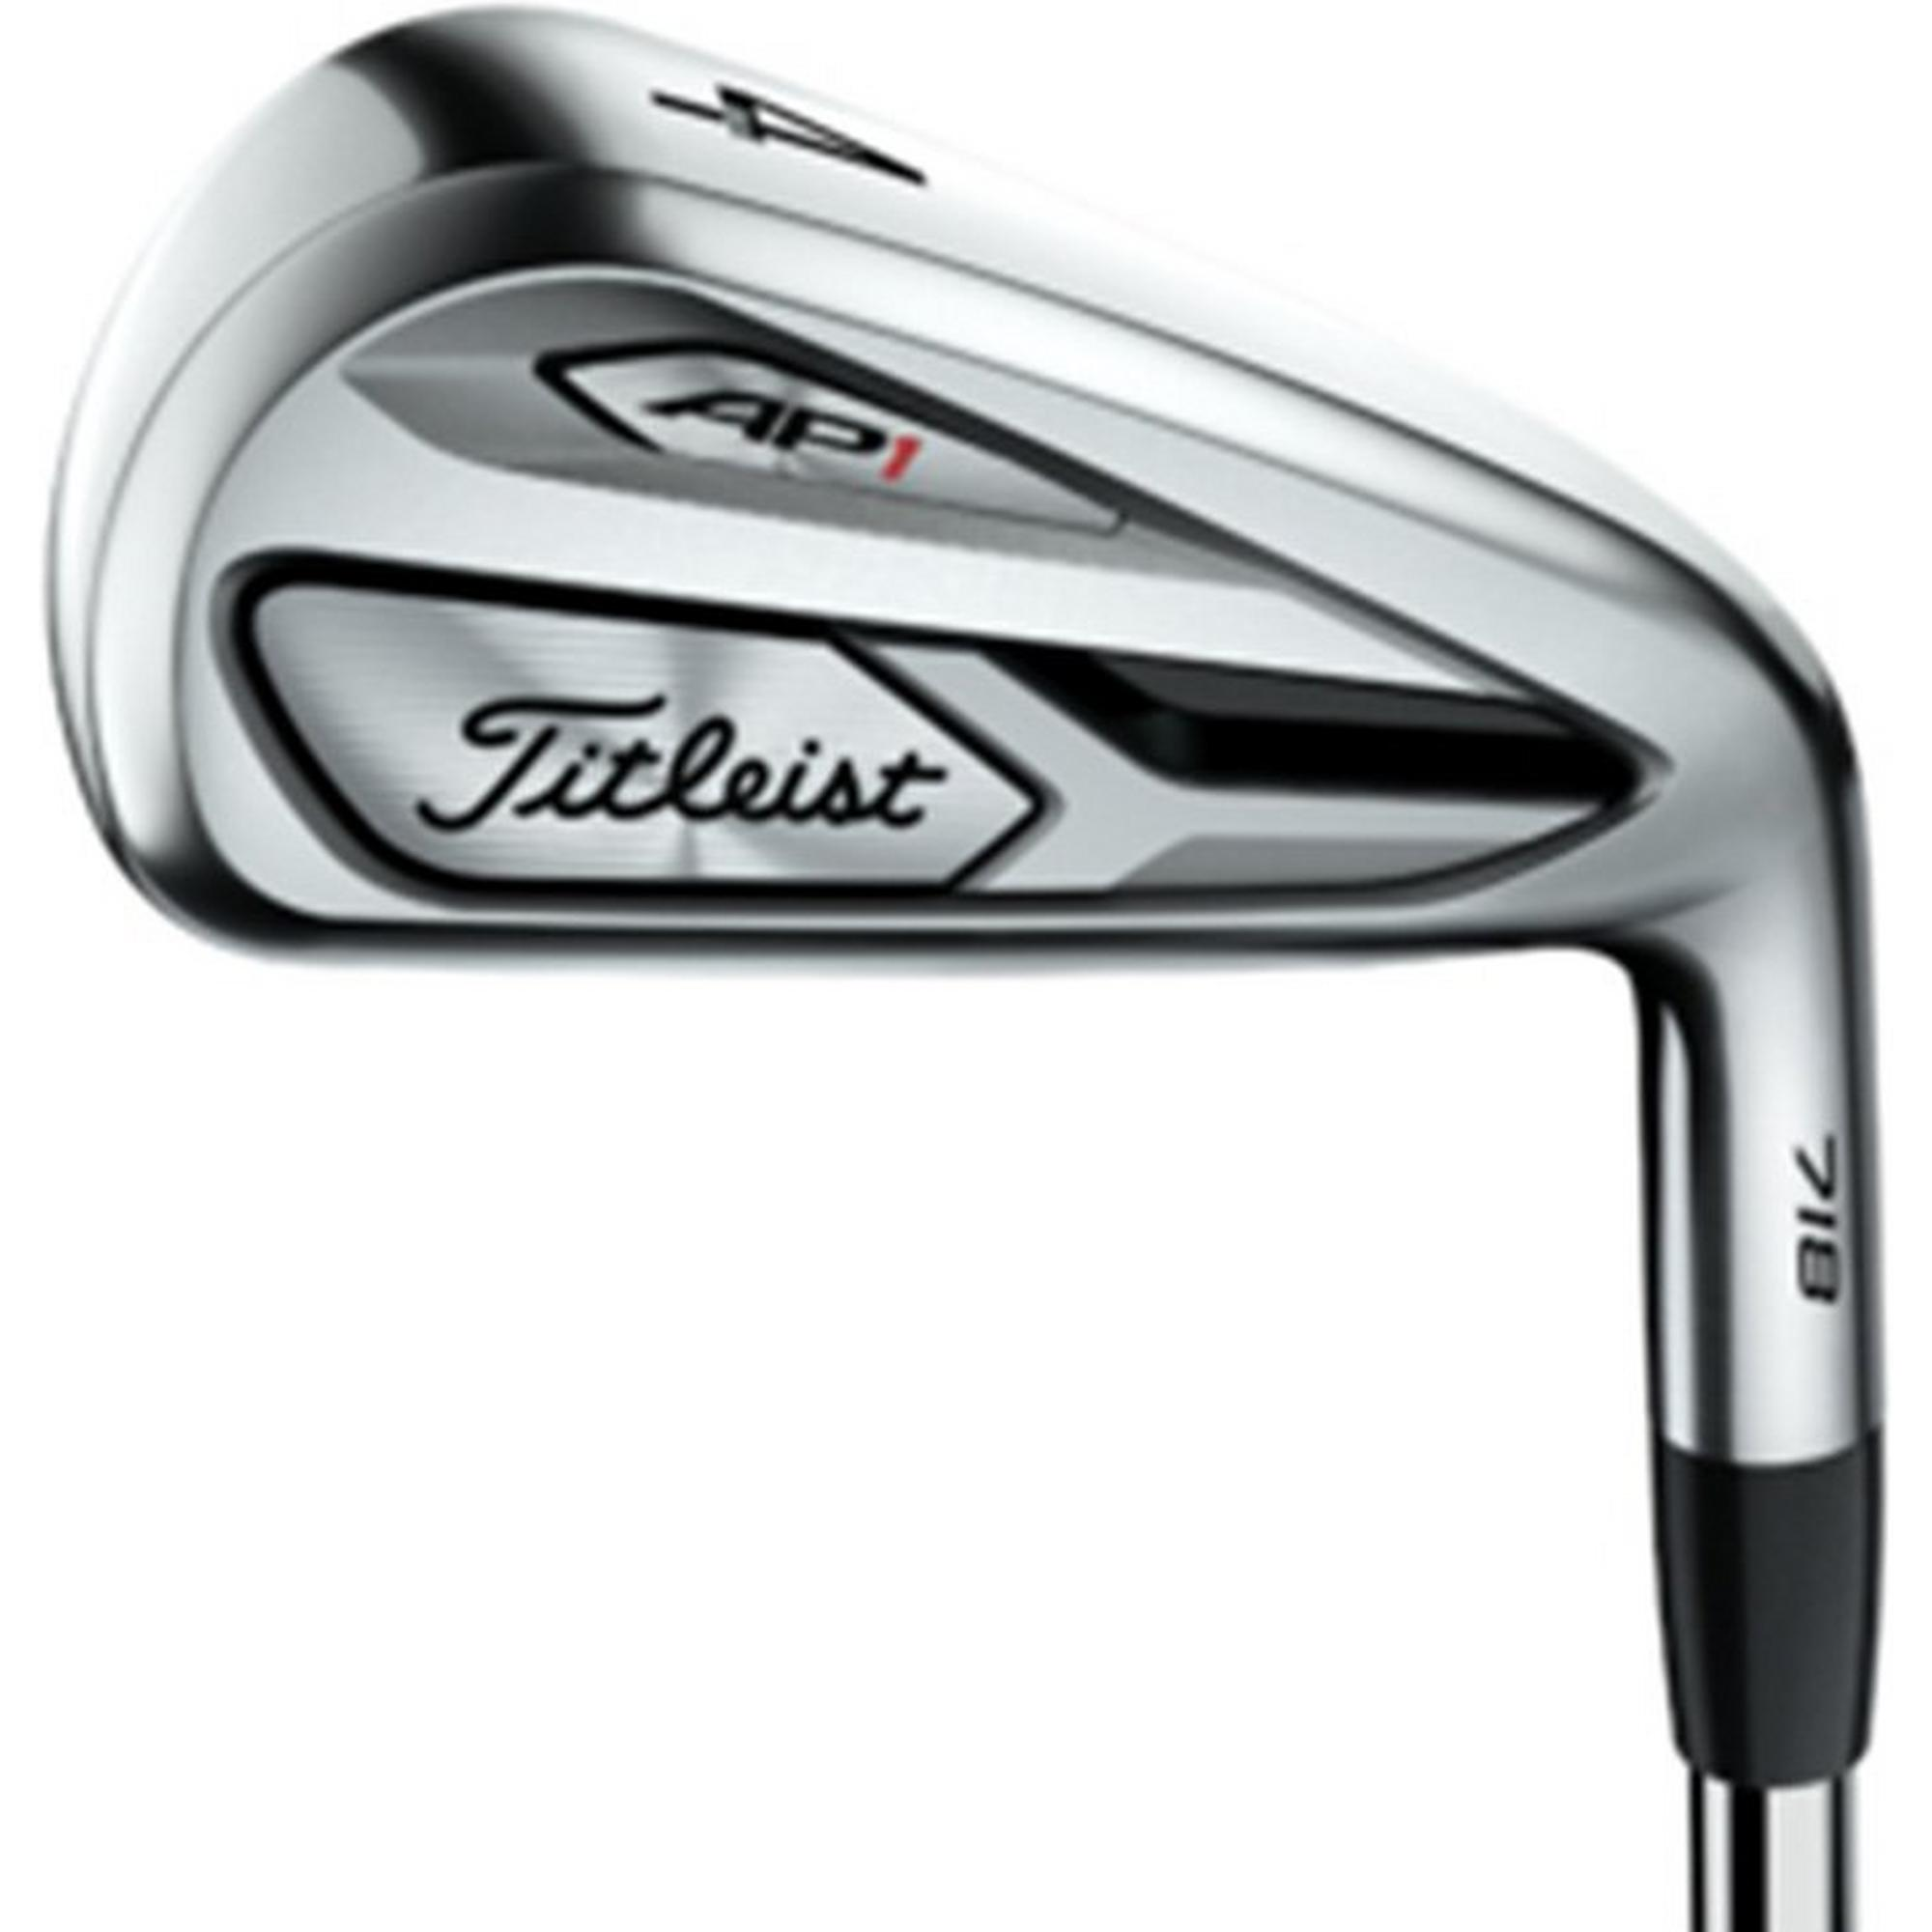 718 AP1 4-PW Iron Set with Steel Shafts